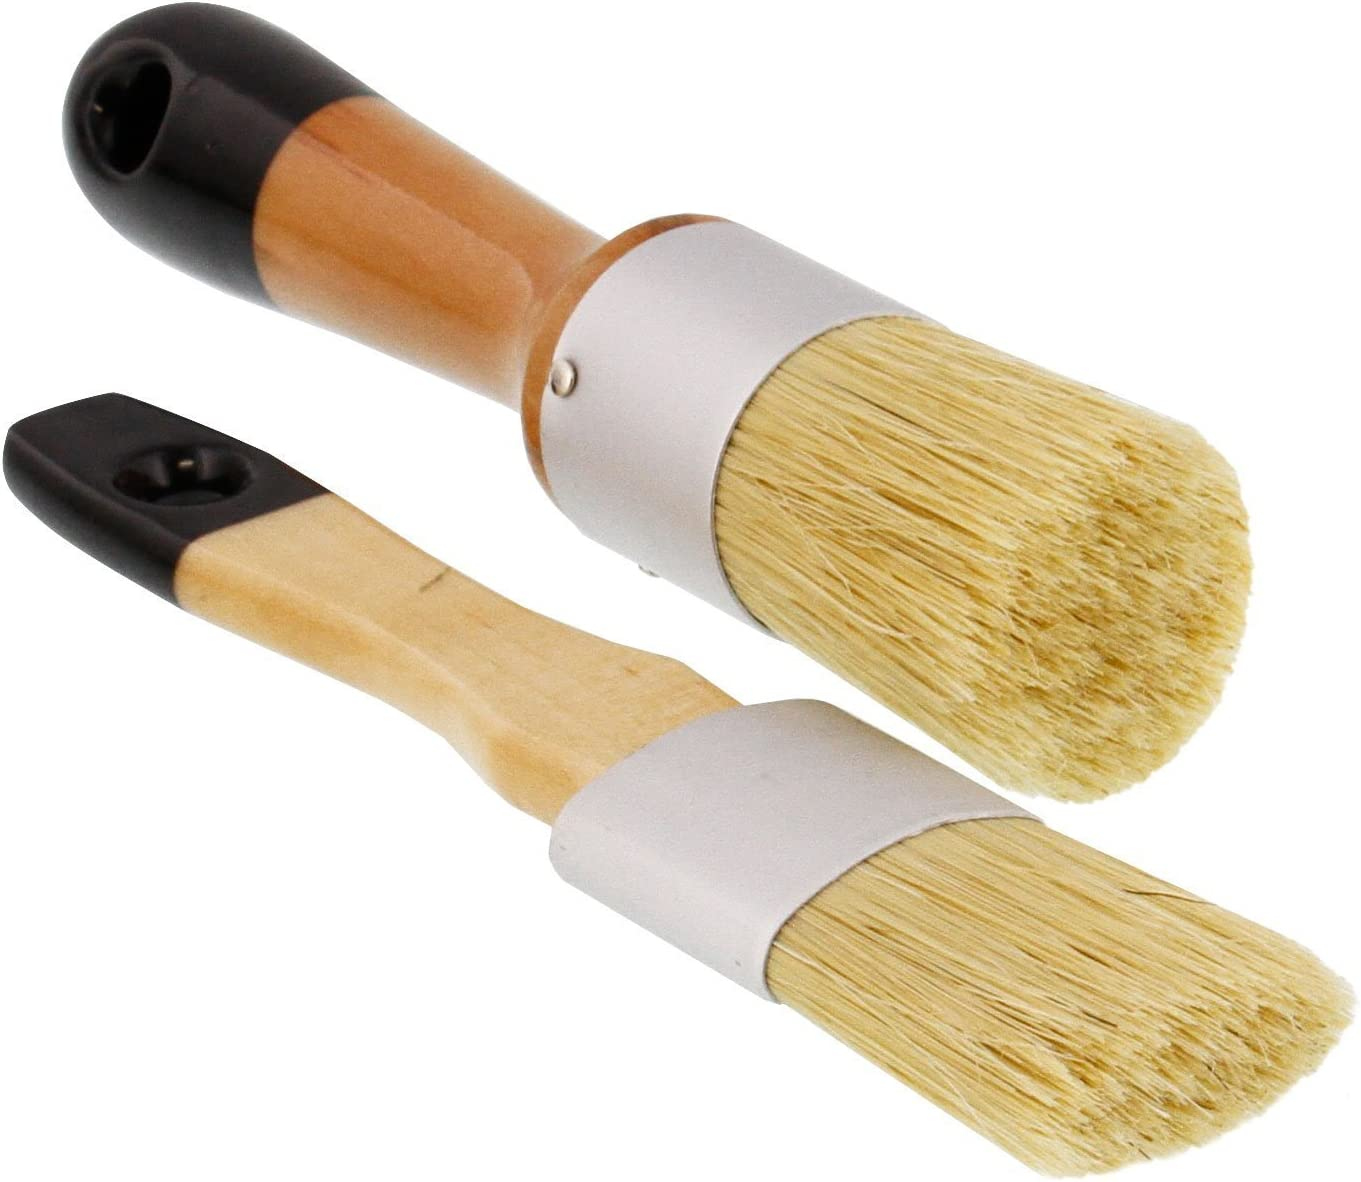 US Art Supply 2-Piece Multi Use Oval and Round Chalk, Wax and Stencil Brushes for Chairs, Dressers, Cabinets and Other Wood Furniture - 100% Natural Bristles, Lightweight and Rust Resistant